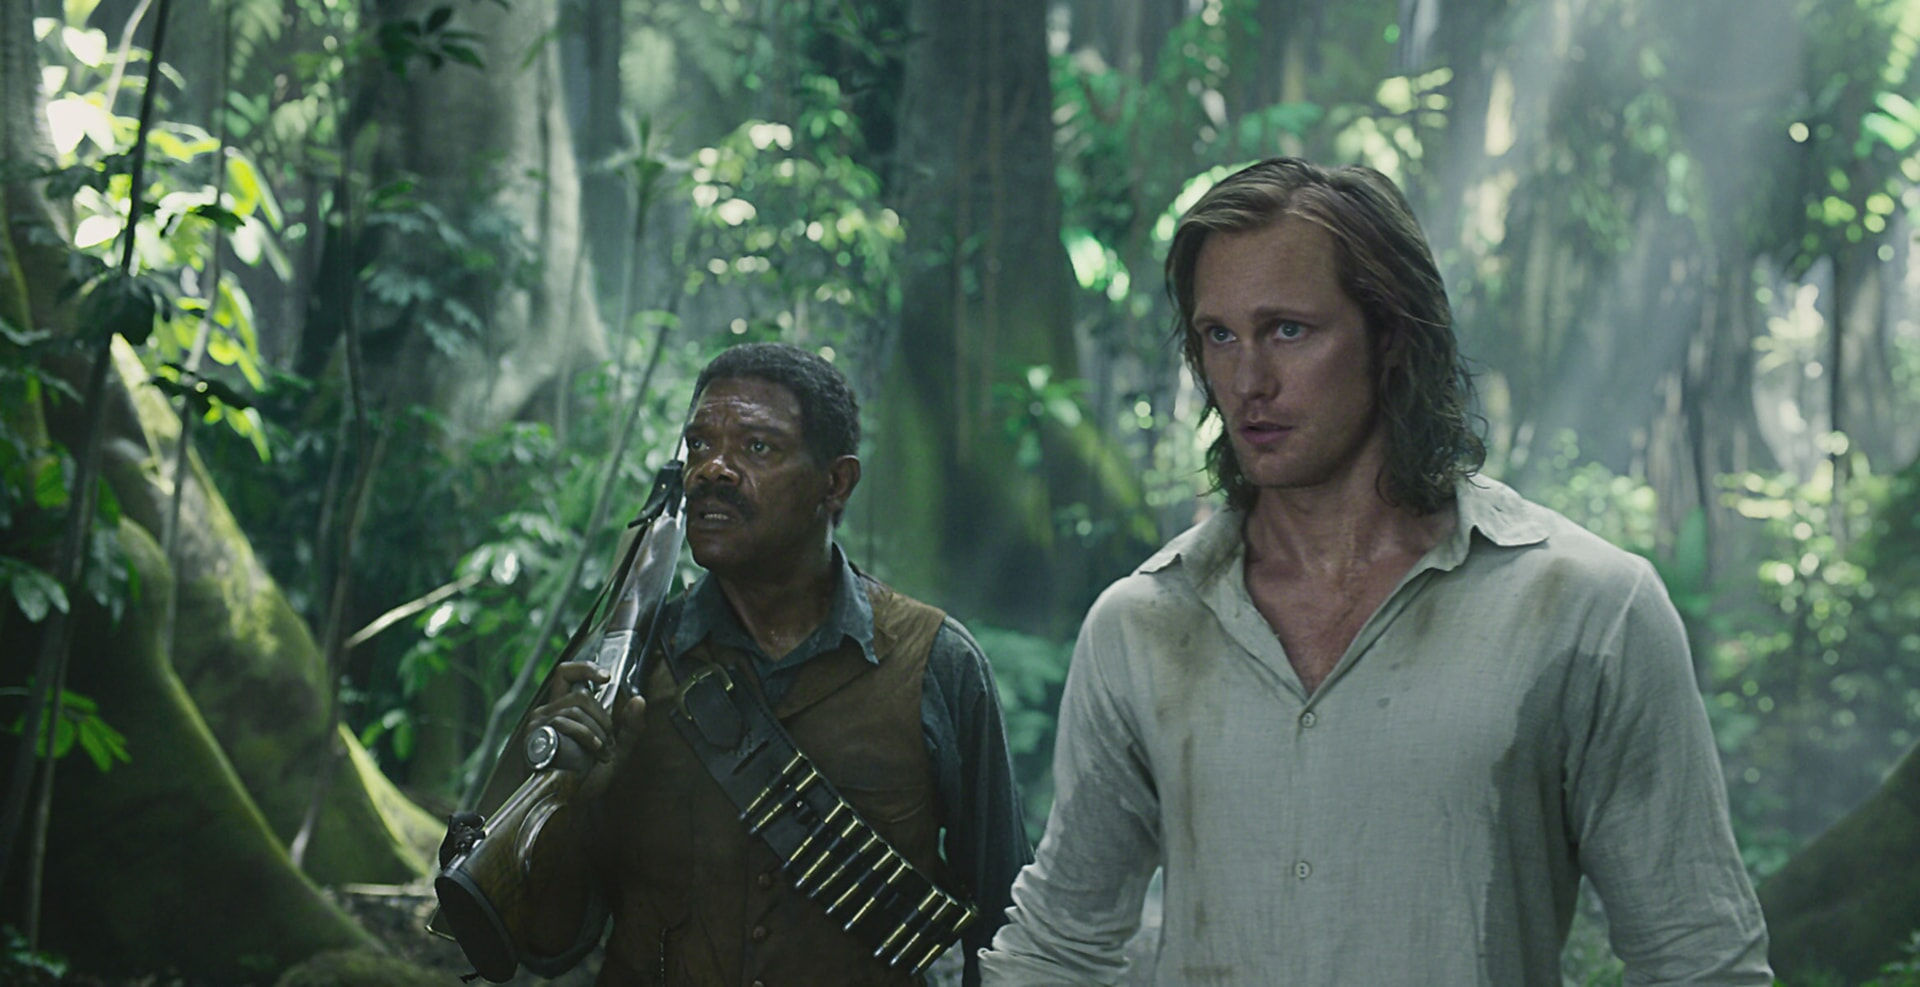 SAMUEL L. JACKSON as George Washington Williams and ALEXANDER SKARSGÅRD as Tarzan